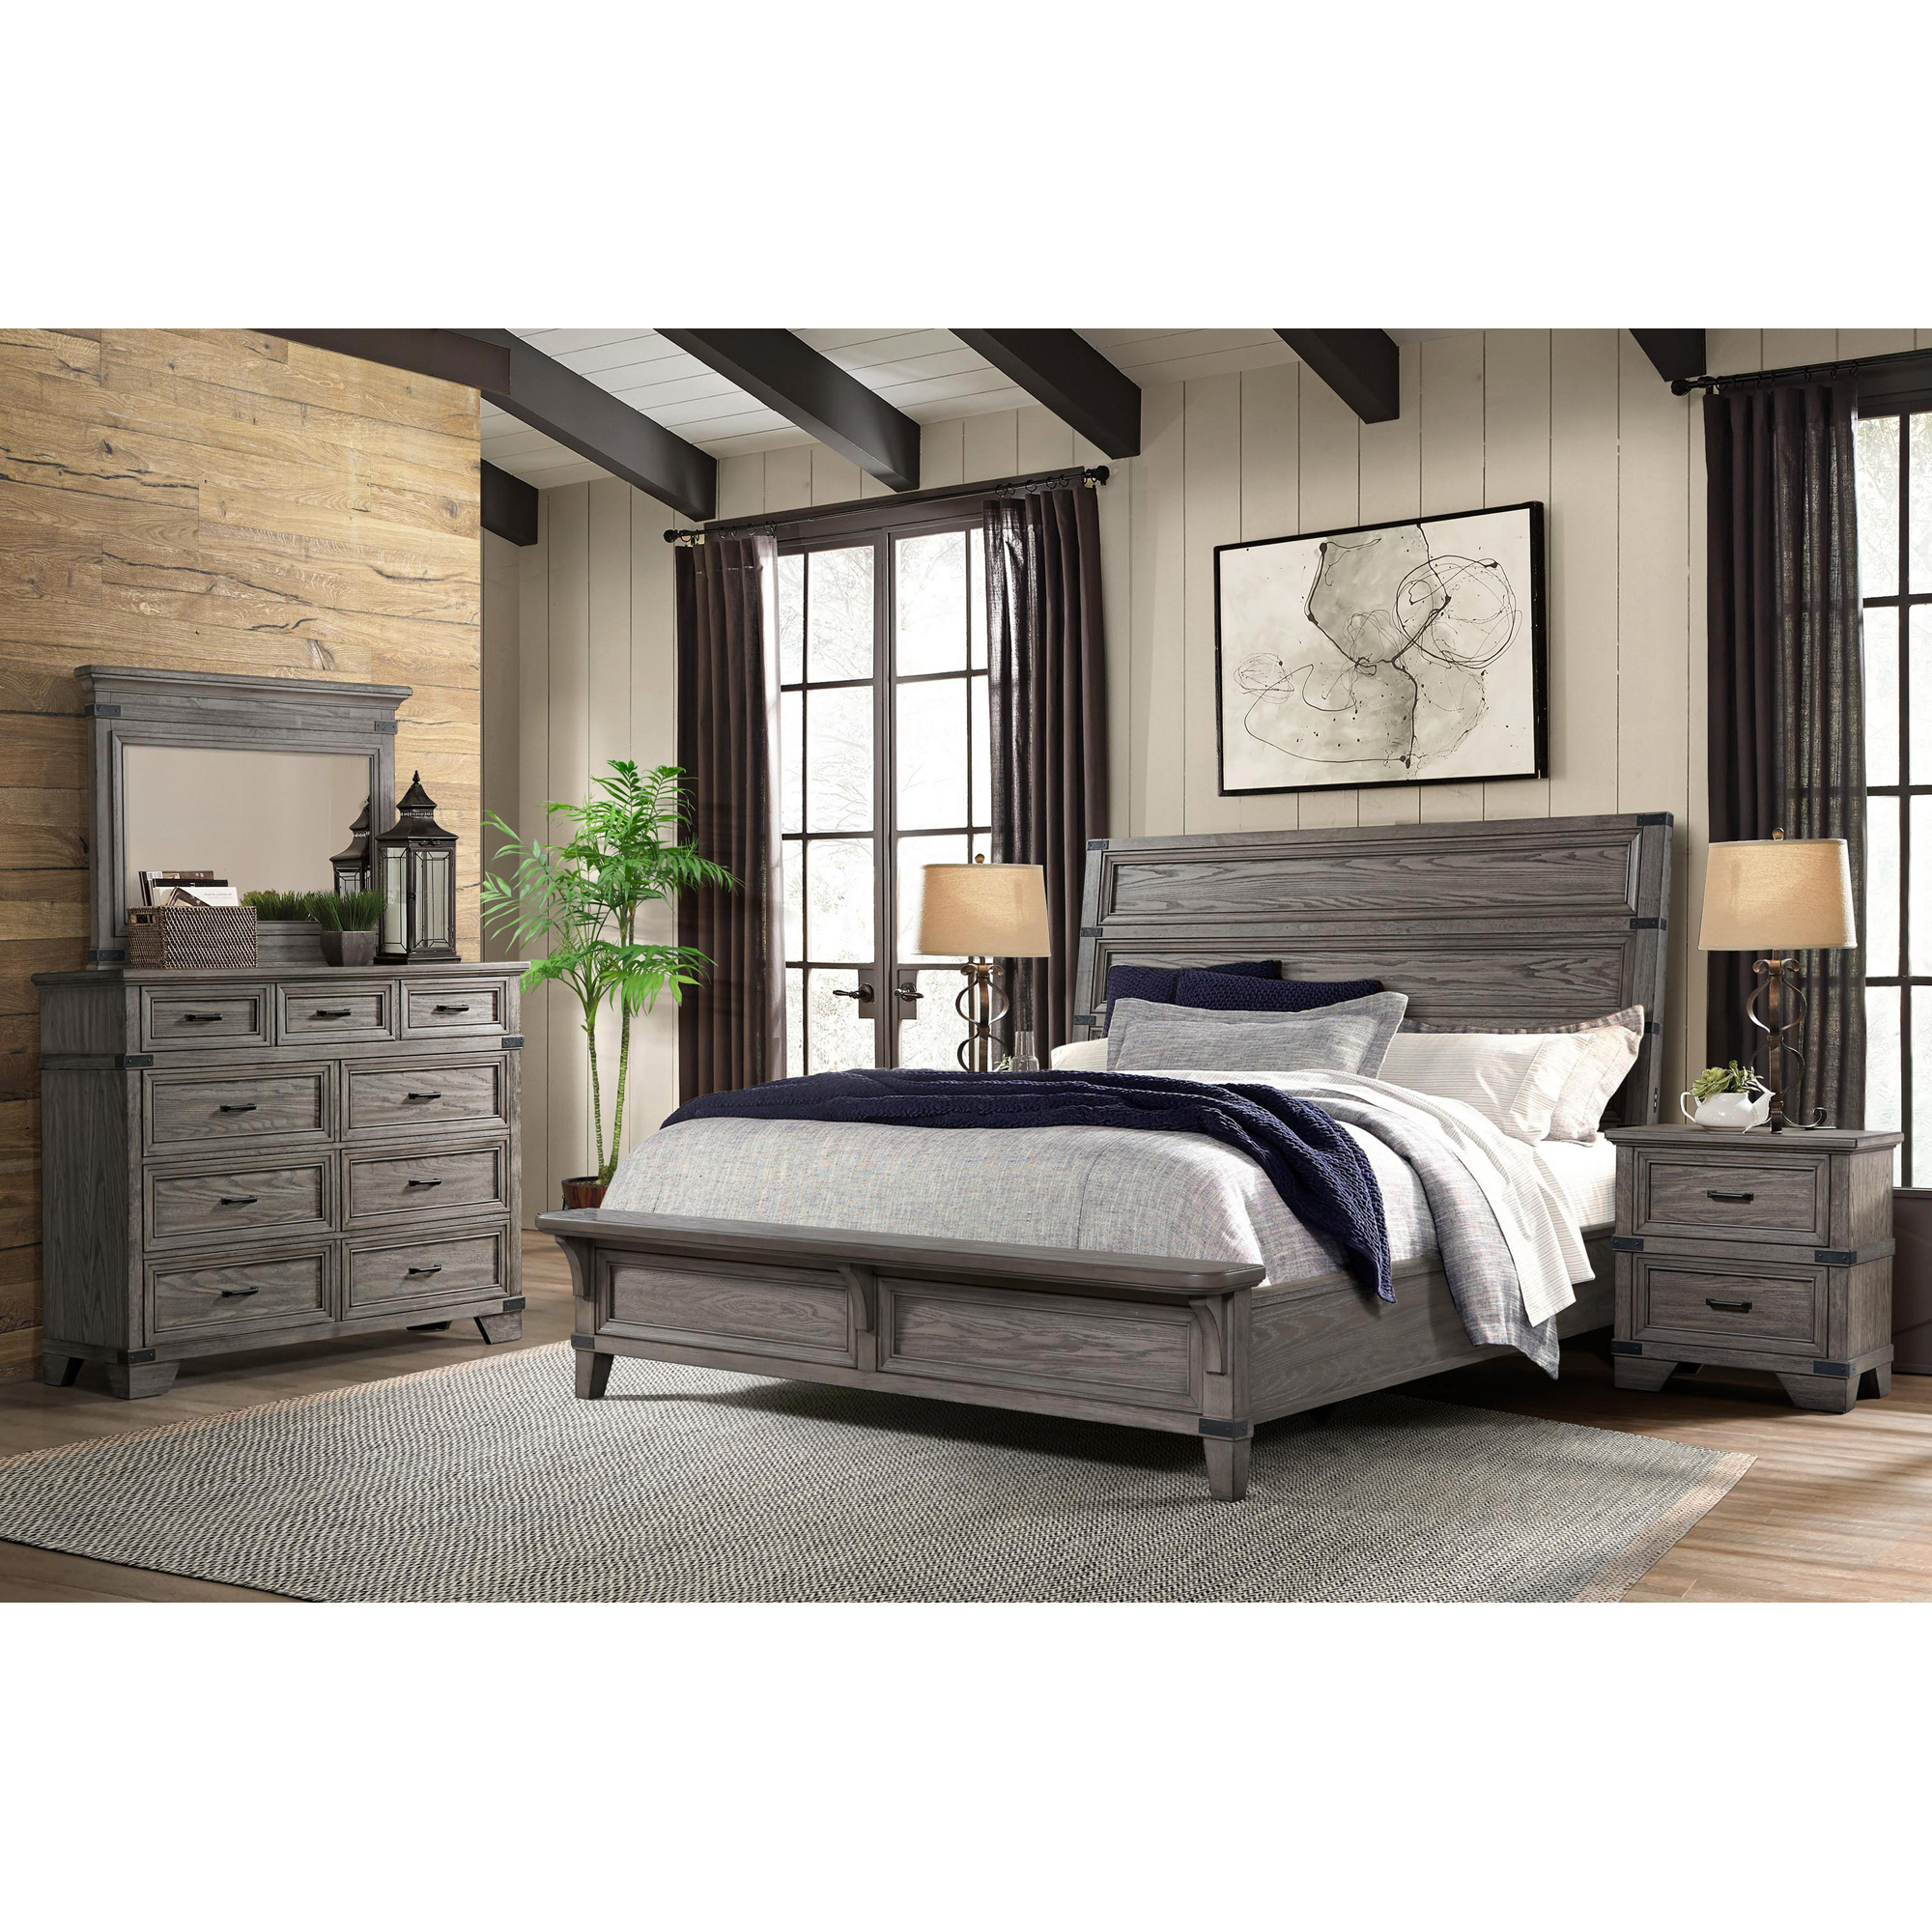 Intercon | Forge Brushed Steel Queen 4 Piece Room Group Bedroom Set